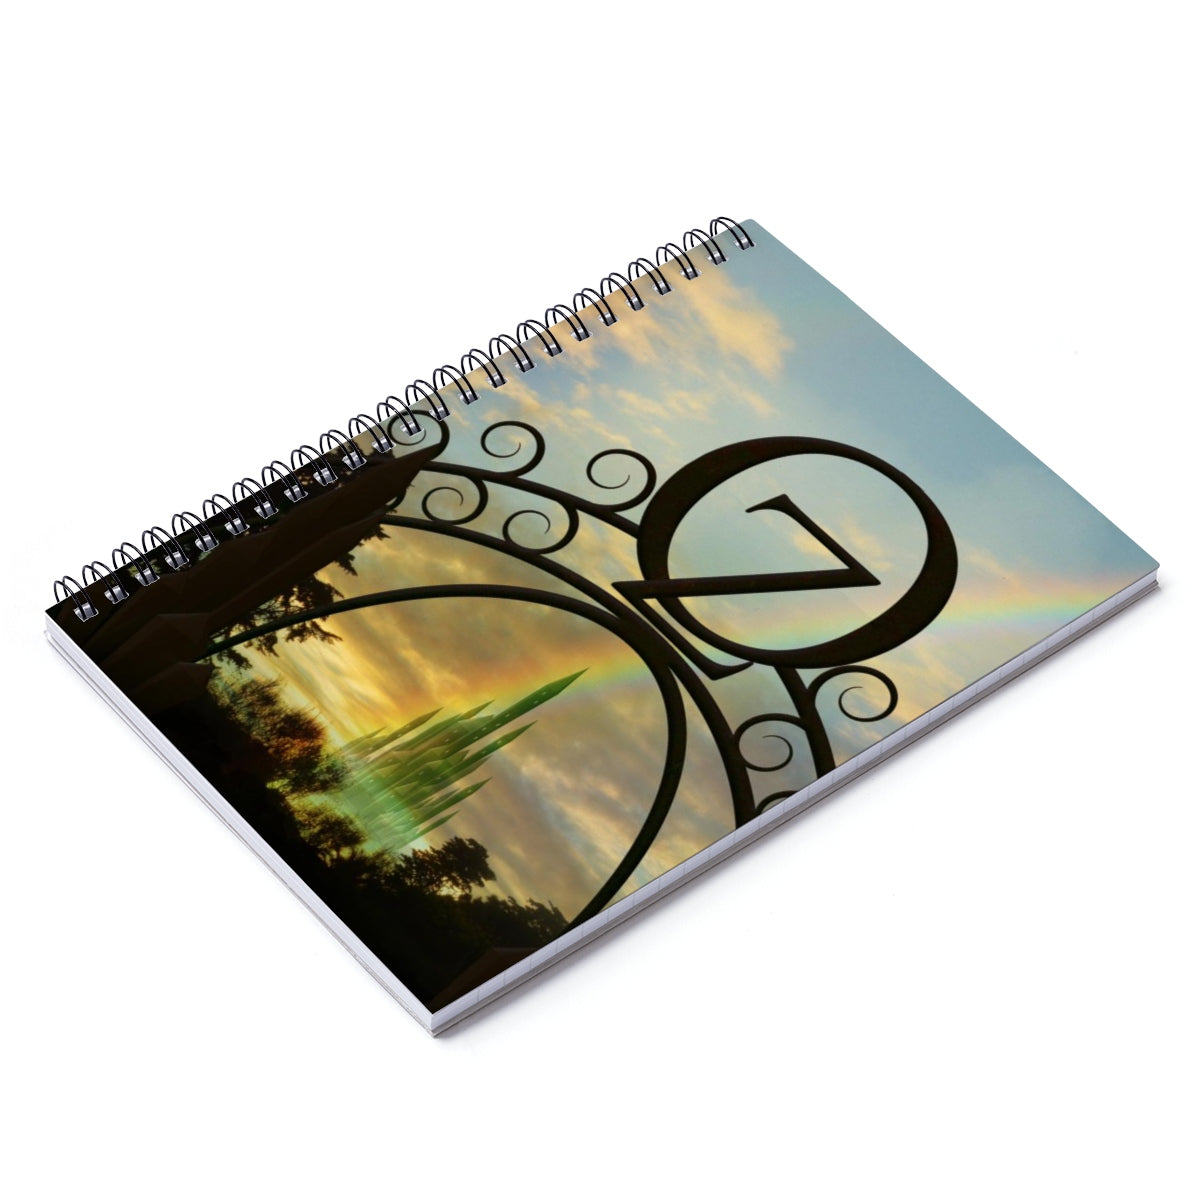 oz Spiral Notebook - Ruled Line